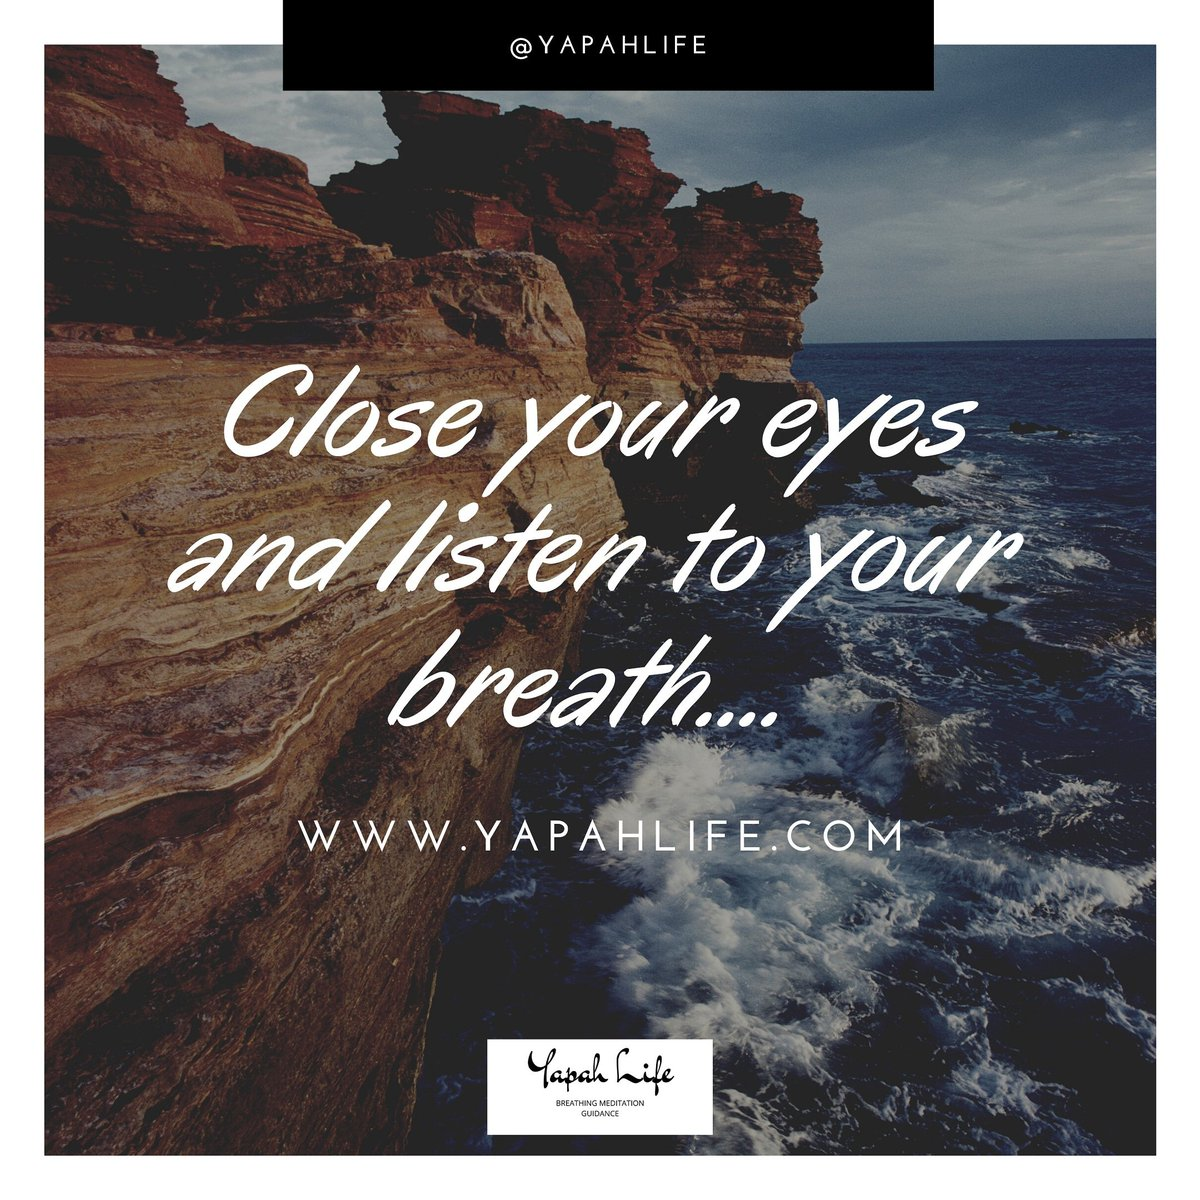 Focus on your breathing when releasing stress...  #wellness #selfcare #breathing #meditation #breath #breathe #mindfulness #health #breathwork #love #breathingexercises #breathingtechniques #relax #nature #calm #healing #energy #mentalhealth #movement #peace #healthylifestyle